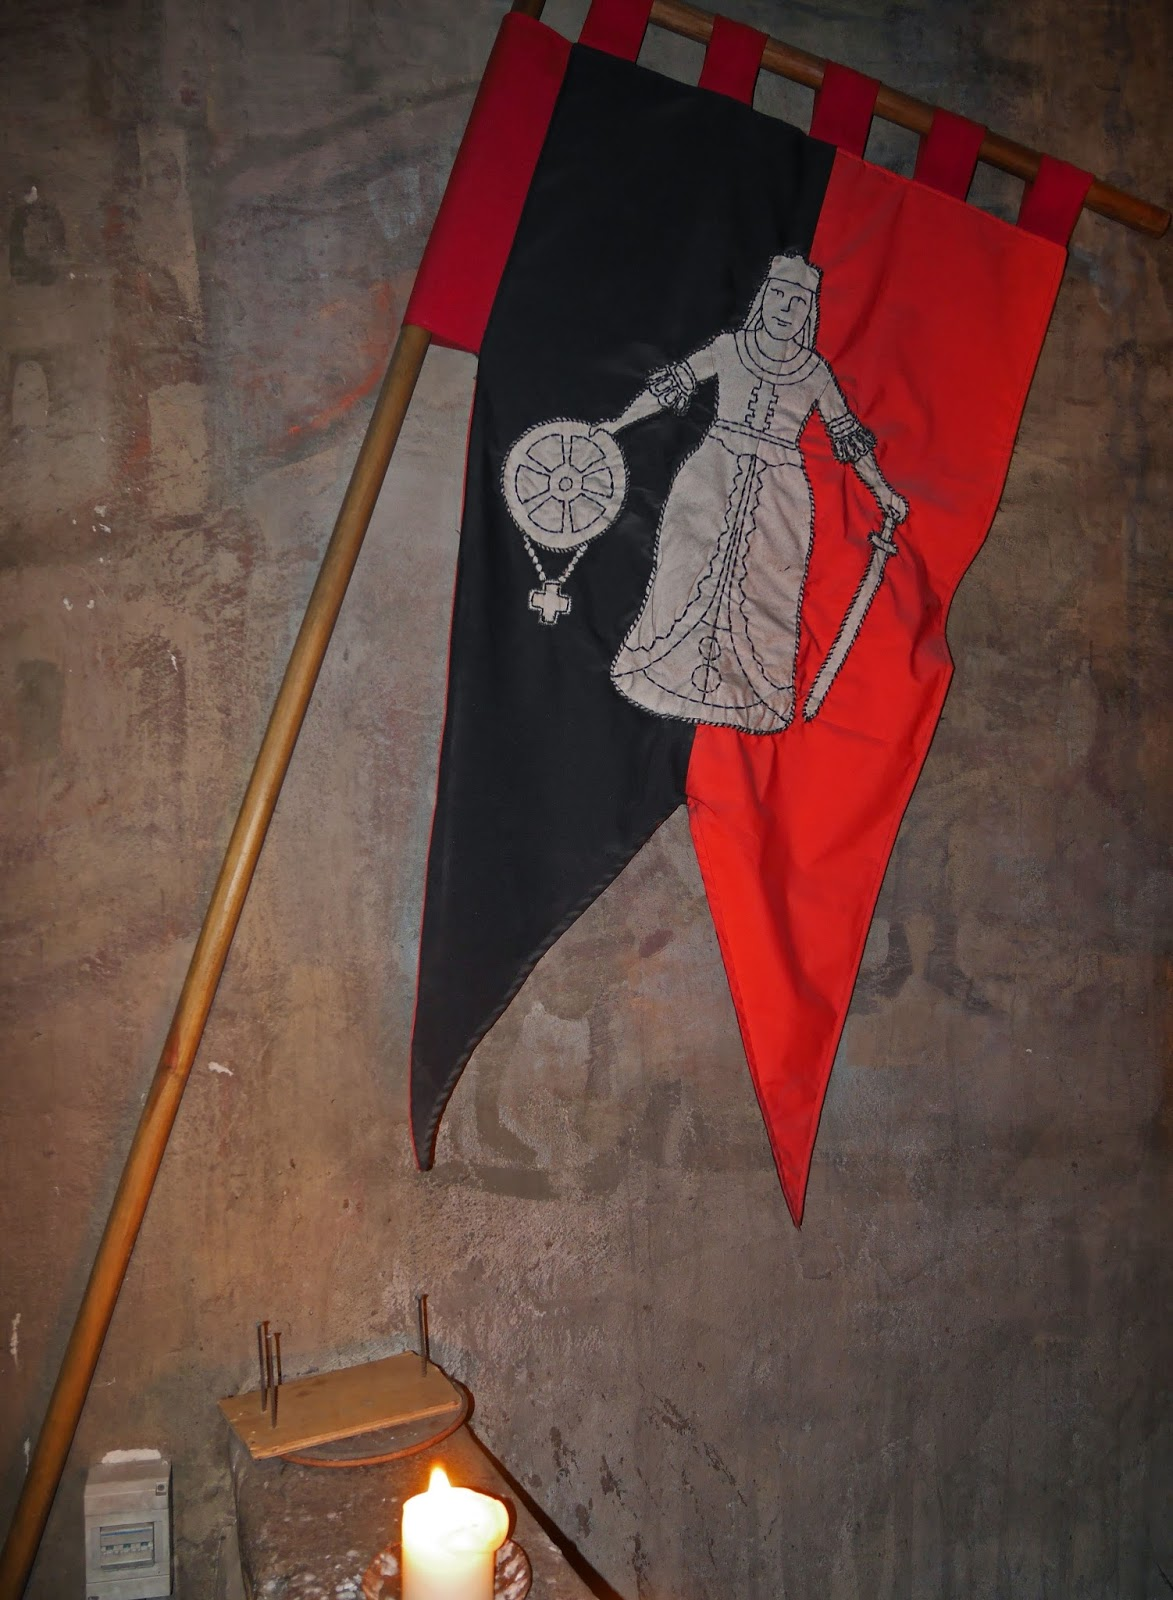 Medieval flag at the entrance to Rozengrāls Medieval Restaurant in Riga, Latvia